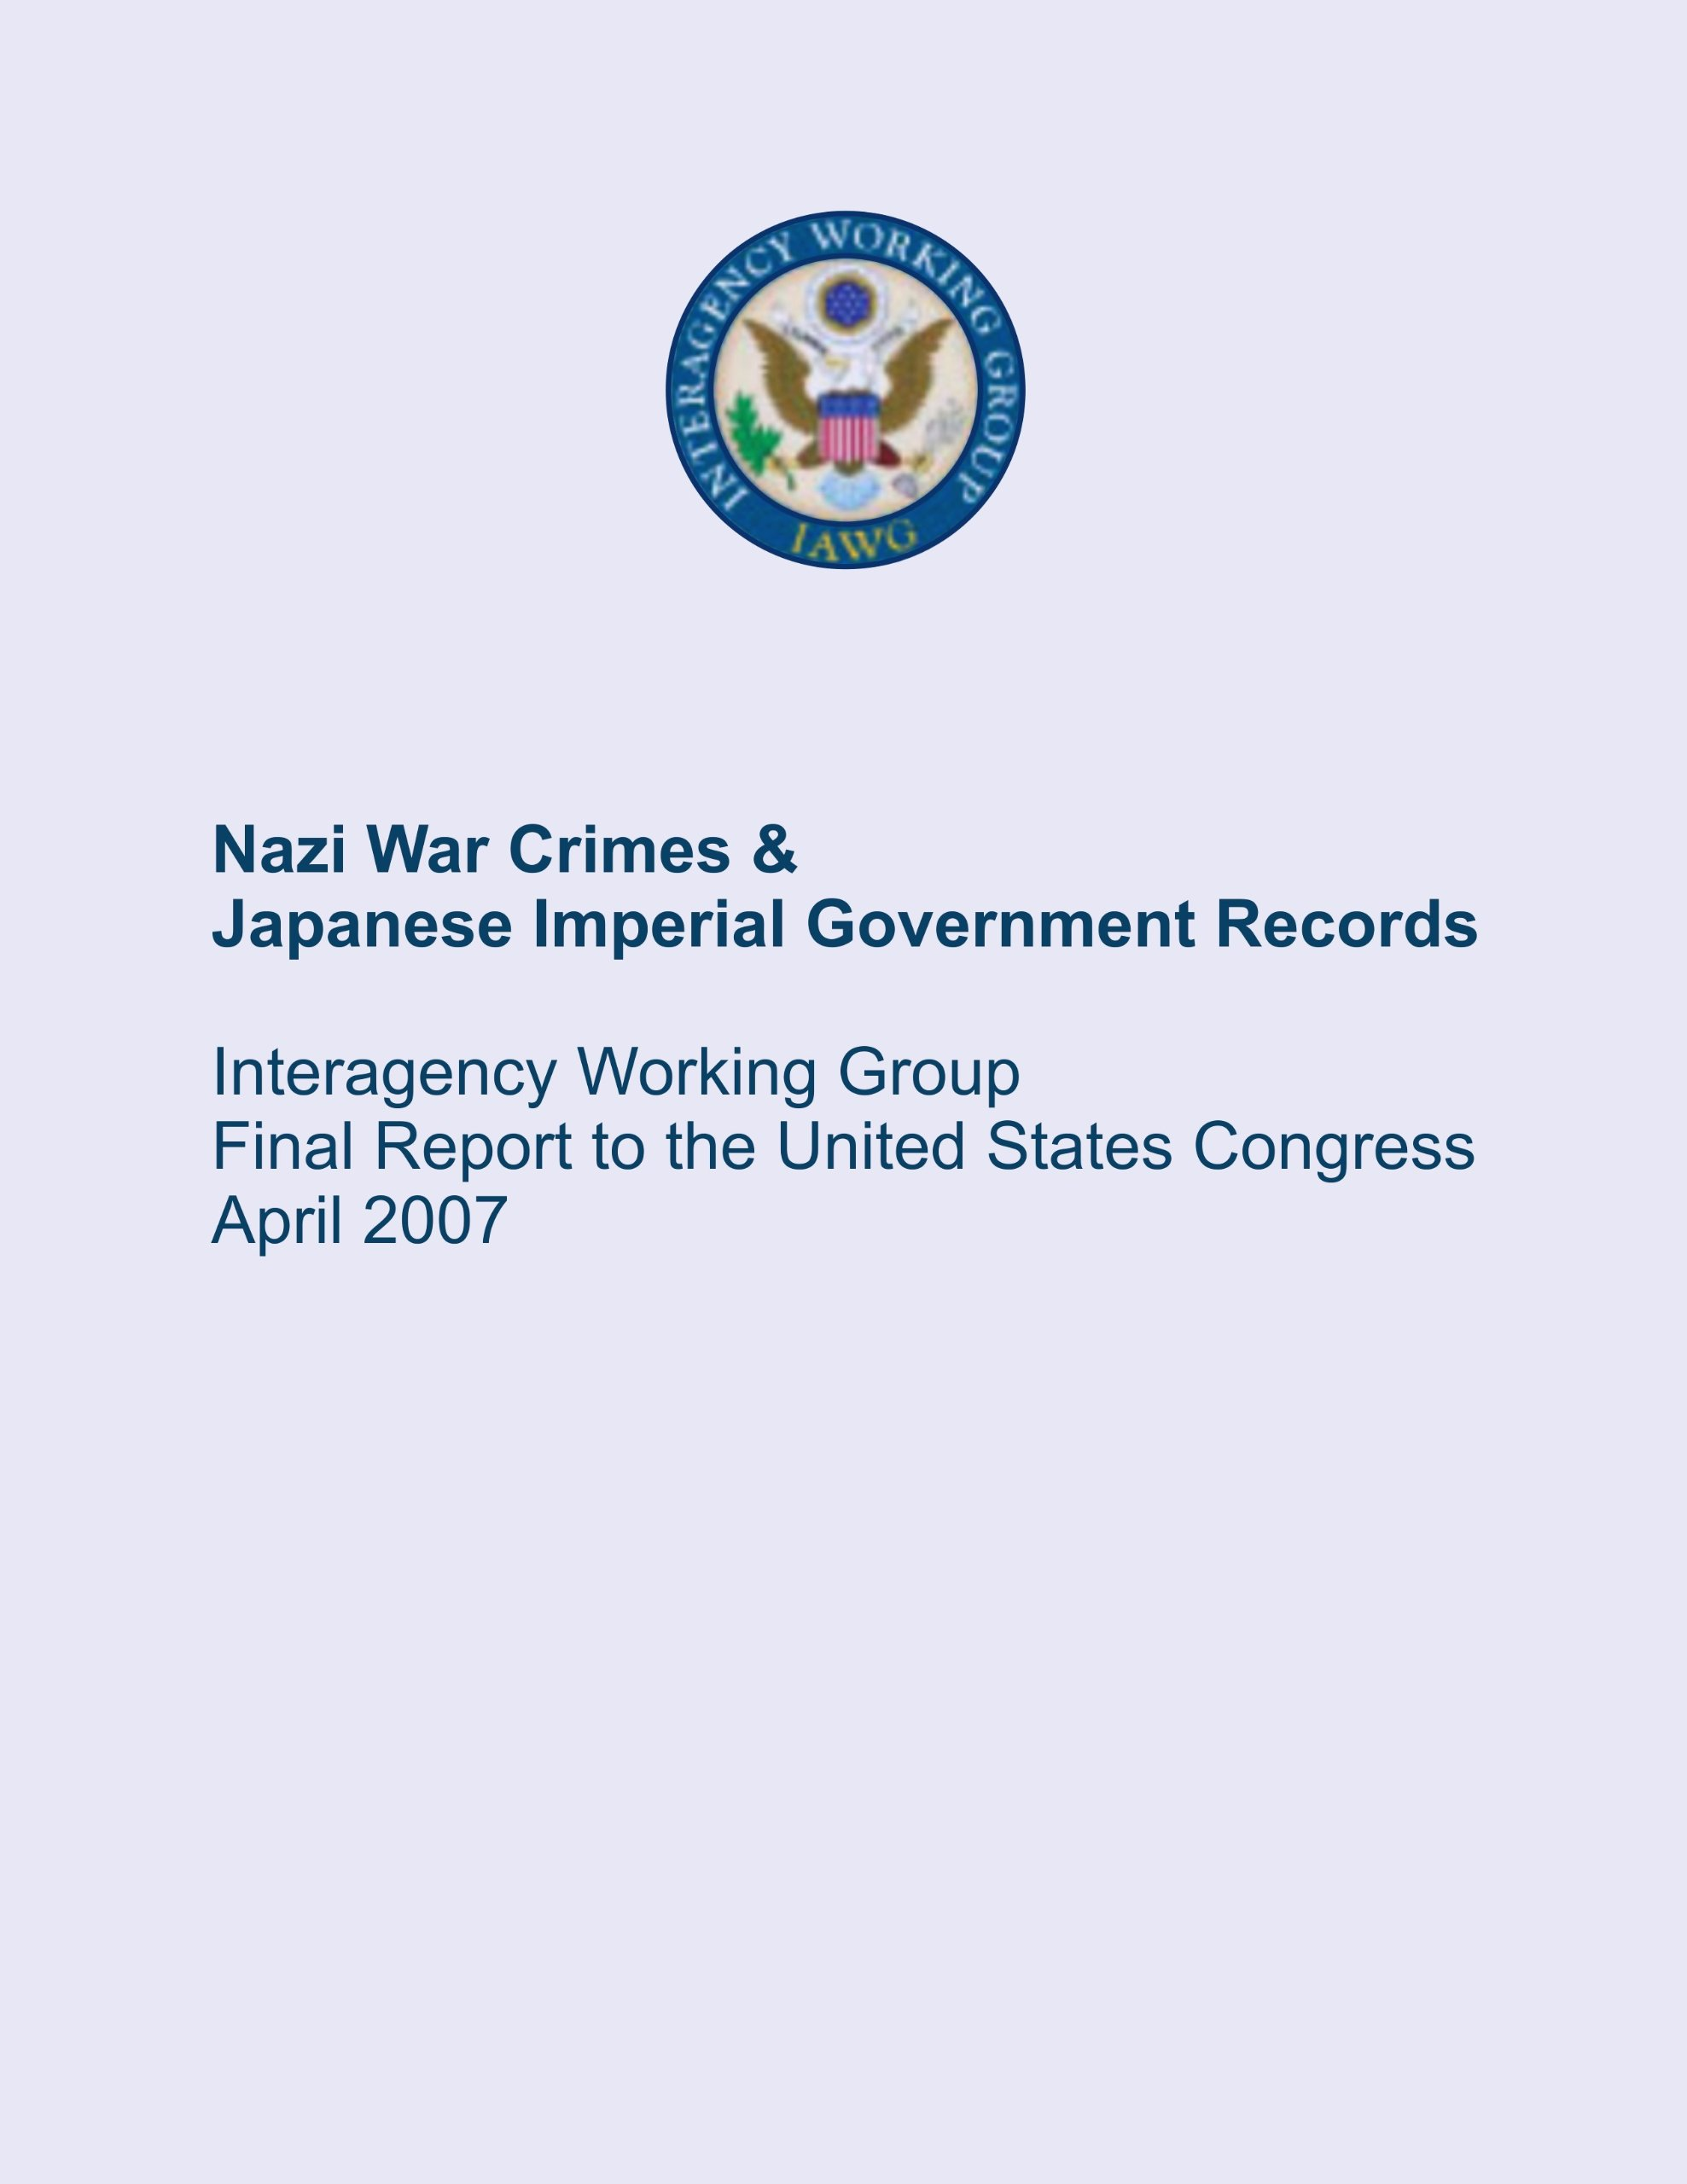 Download Nazi War Crimes & Japanese Imperial Government Records Interagency Working Group Final Report to the United States Congress April 2007 pdf